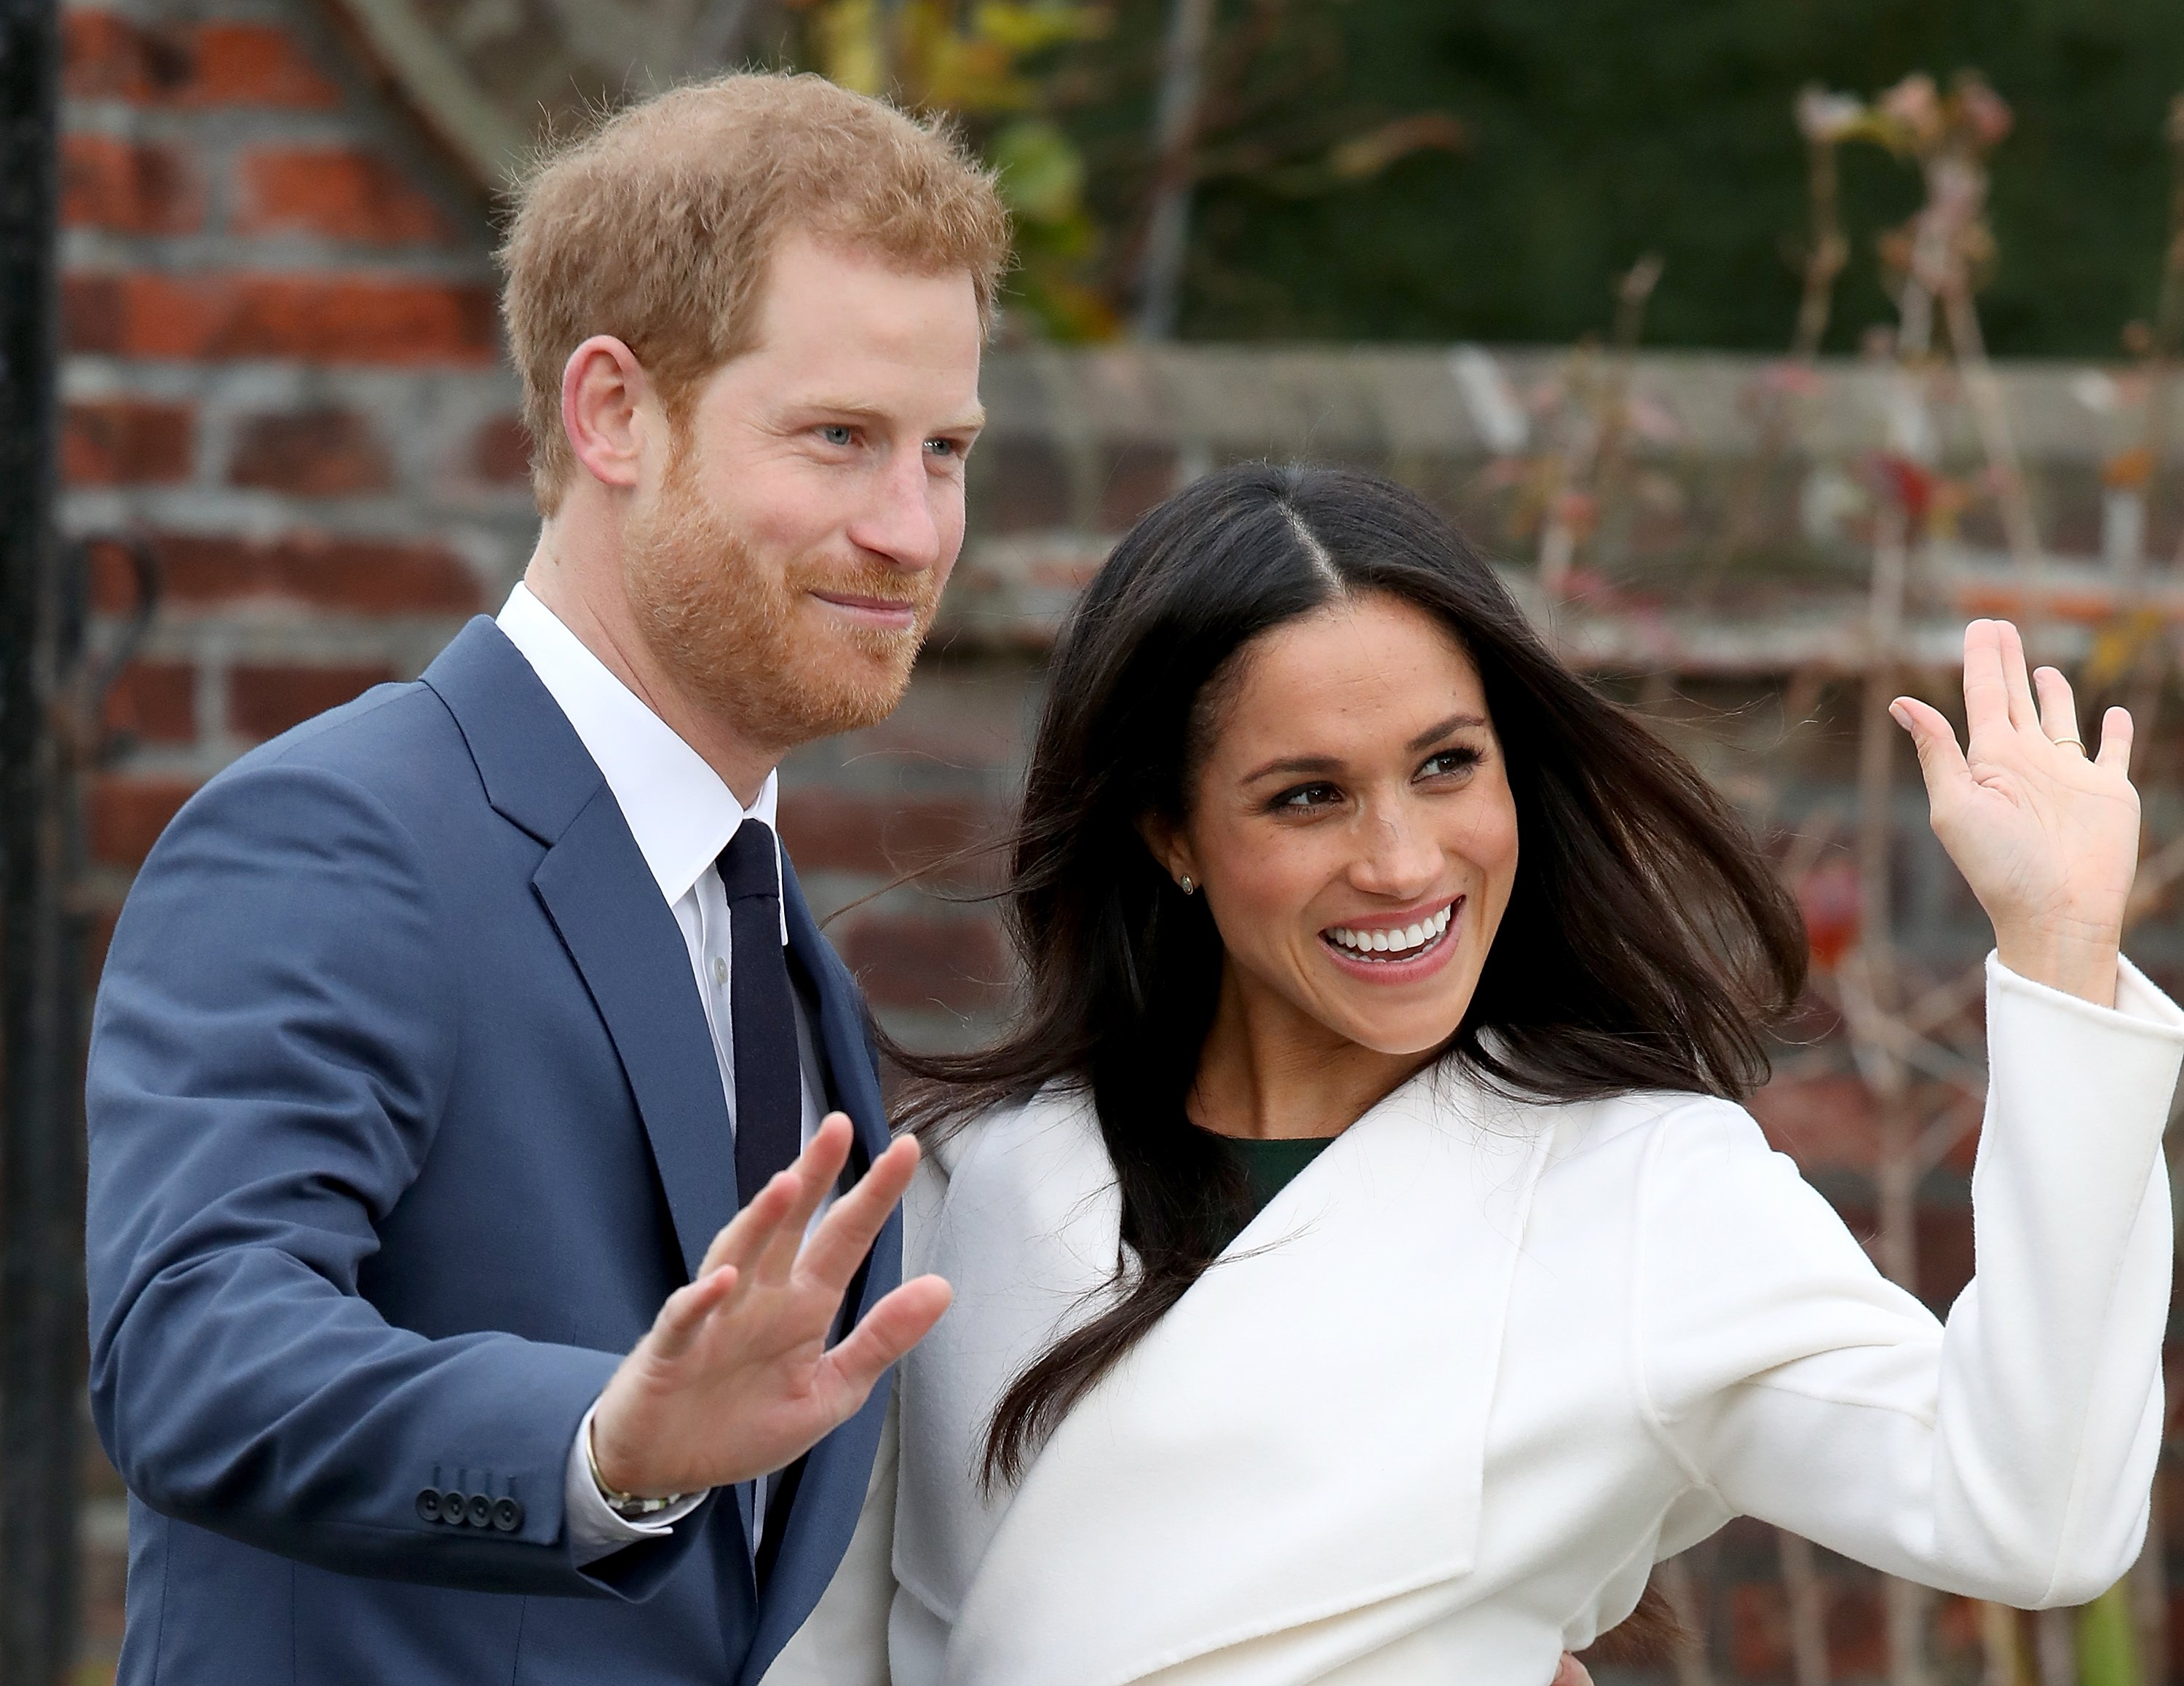 Prince Harry and Meghan Markle during an official photocall to announce their engagement at The Sunken Gardens at Kensington Palace on November 27, 2017. | Photo: Getty Images